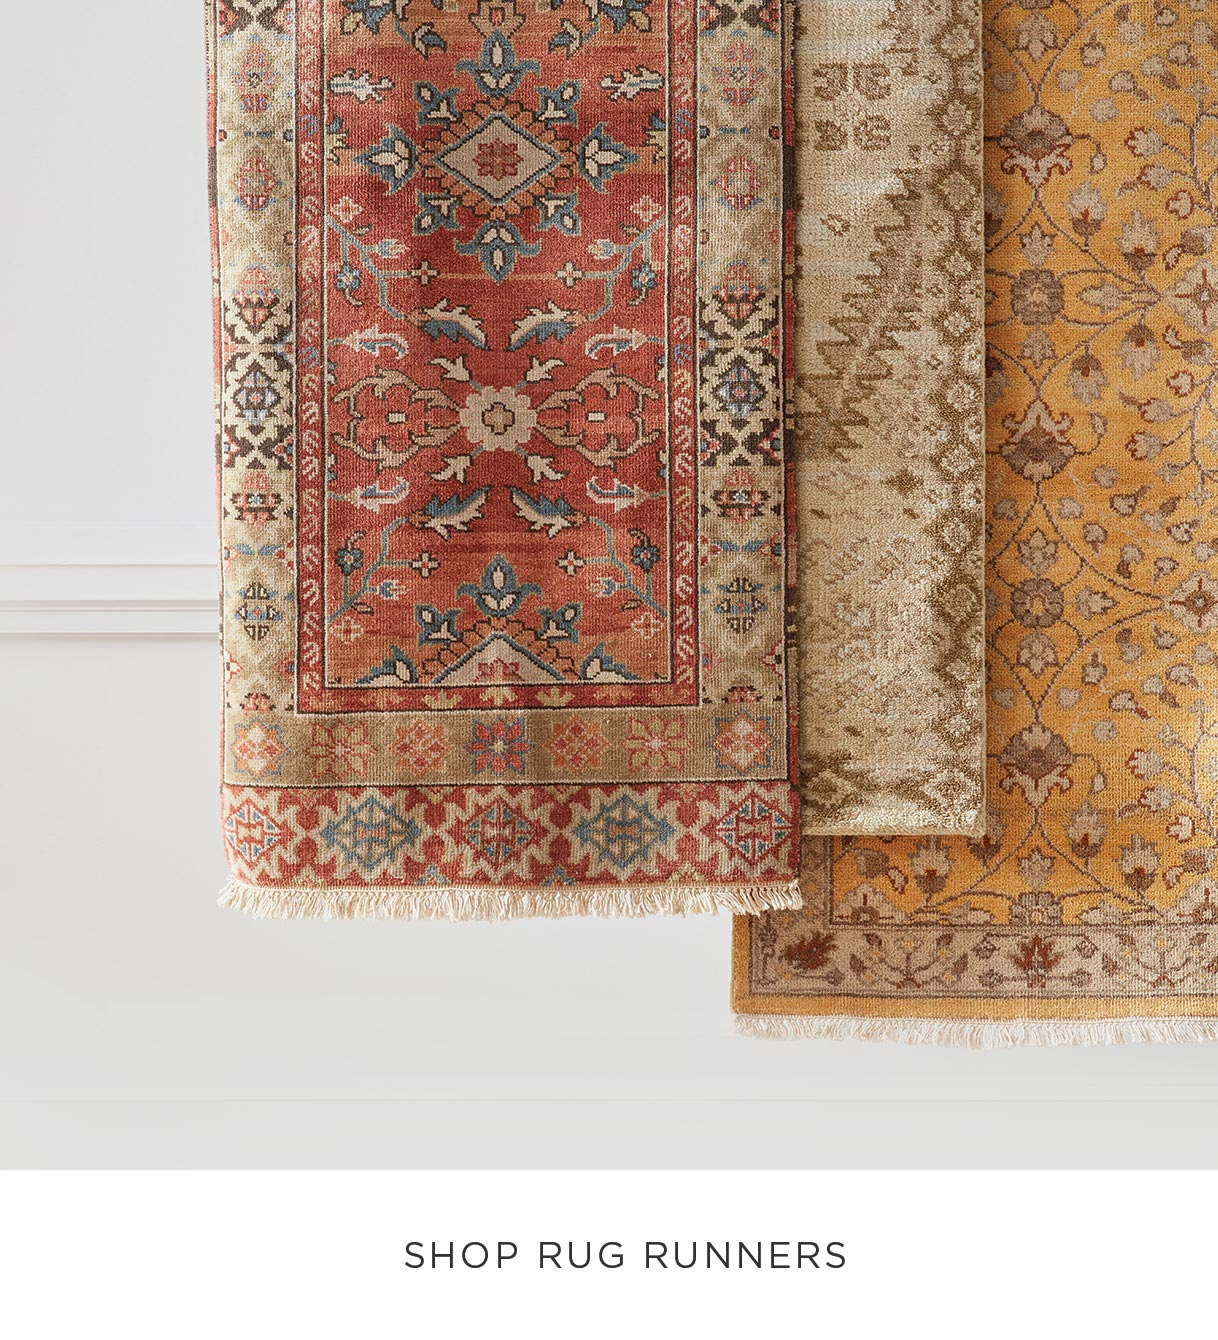 Shop Rug Runners